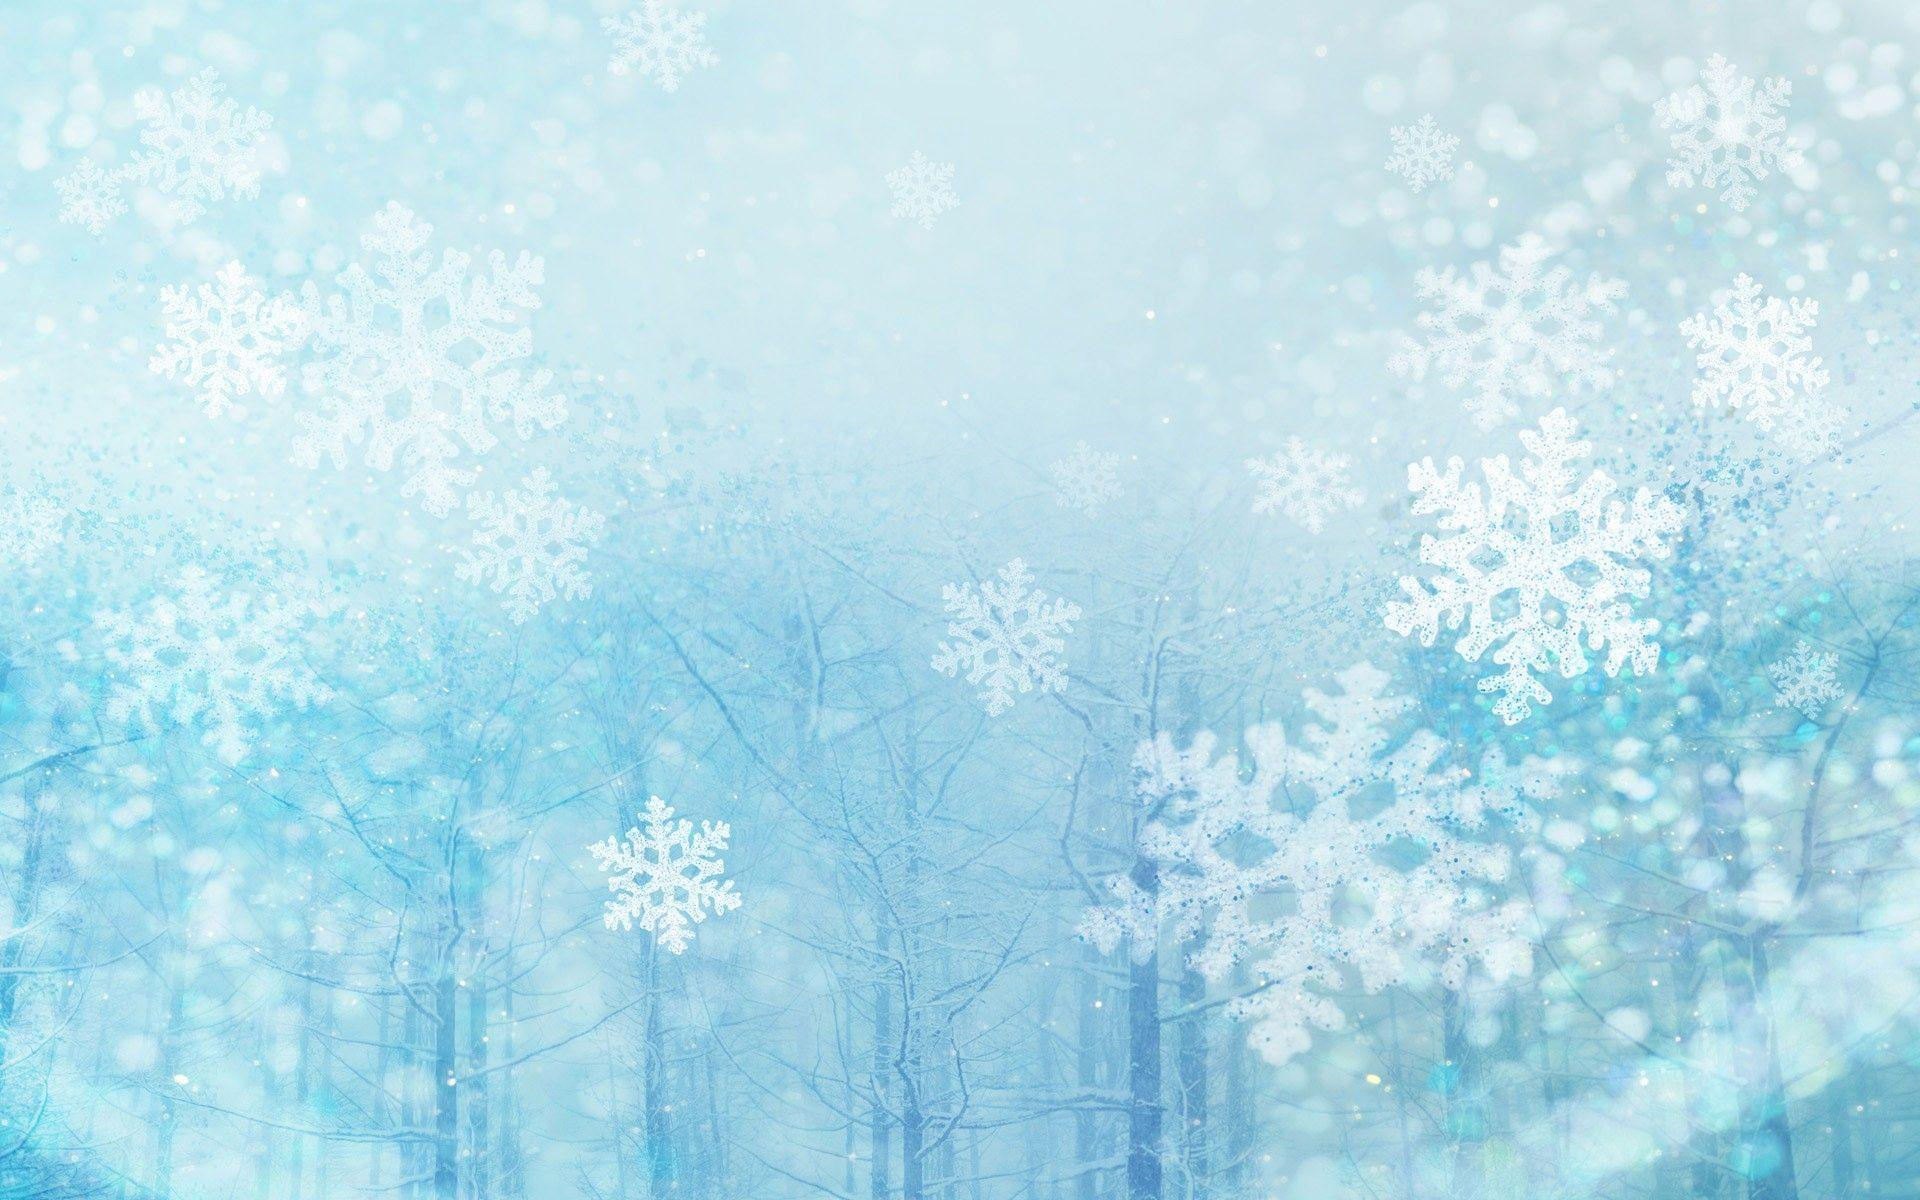 3 Romantic snow flakes & Christmas baubles Wallpapers - HD ...